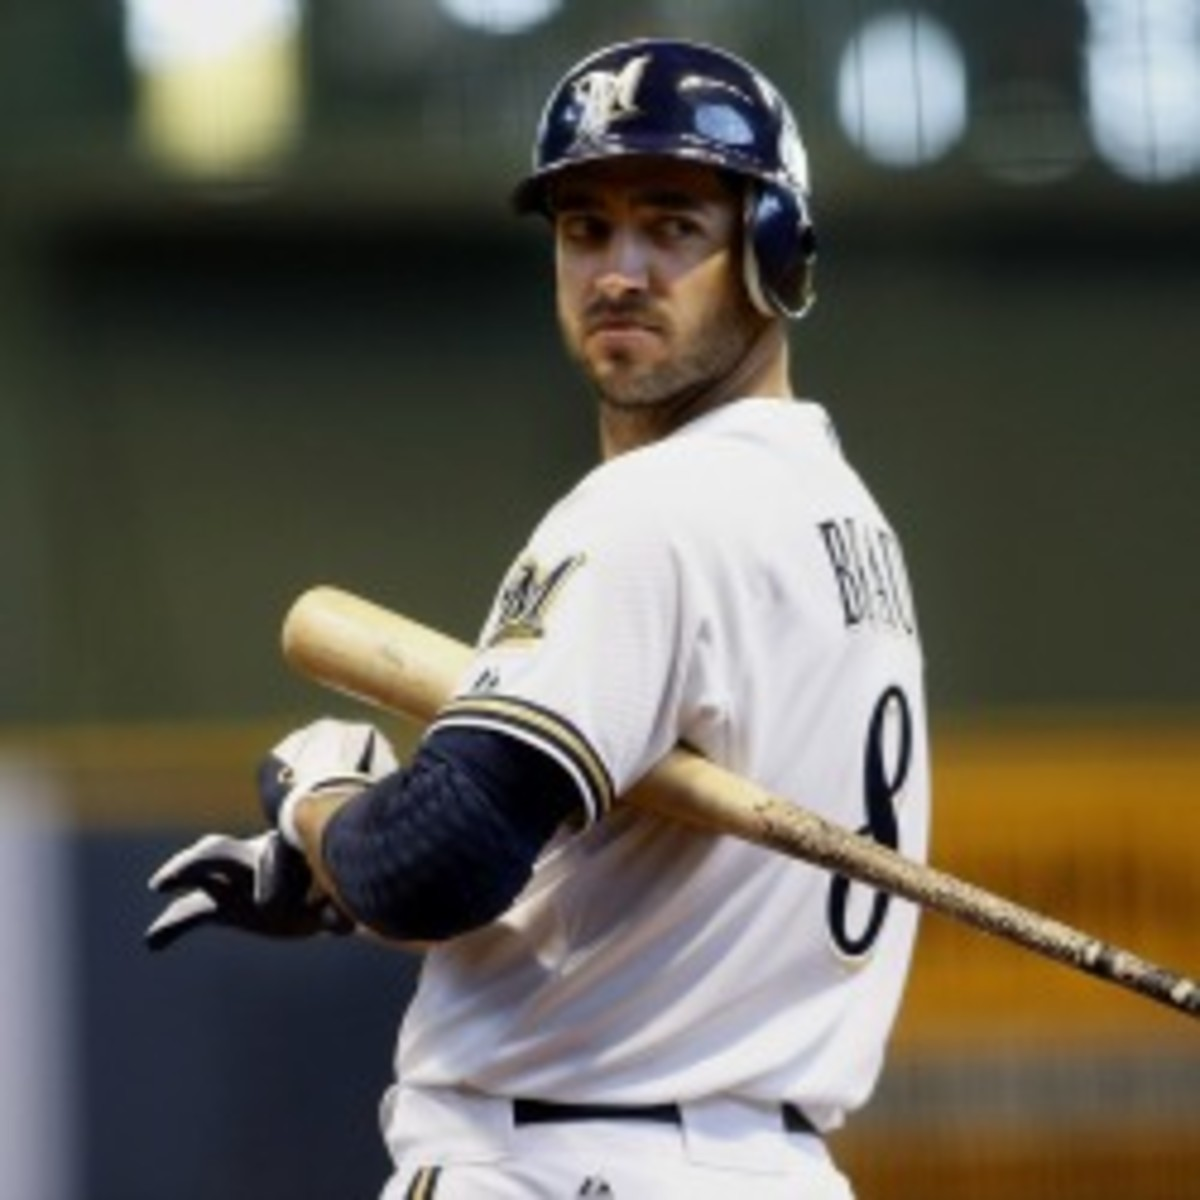 Brewers outfielder Ryan Braun's name shows up in the records of a Miami clinic alleged to have given PEDs to MLB players. (Mark Hirsch/Getty Images)